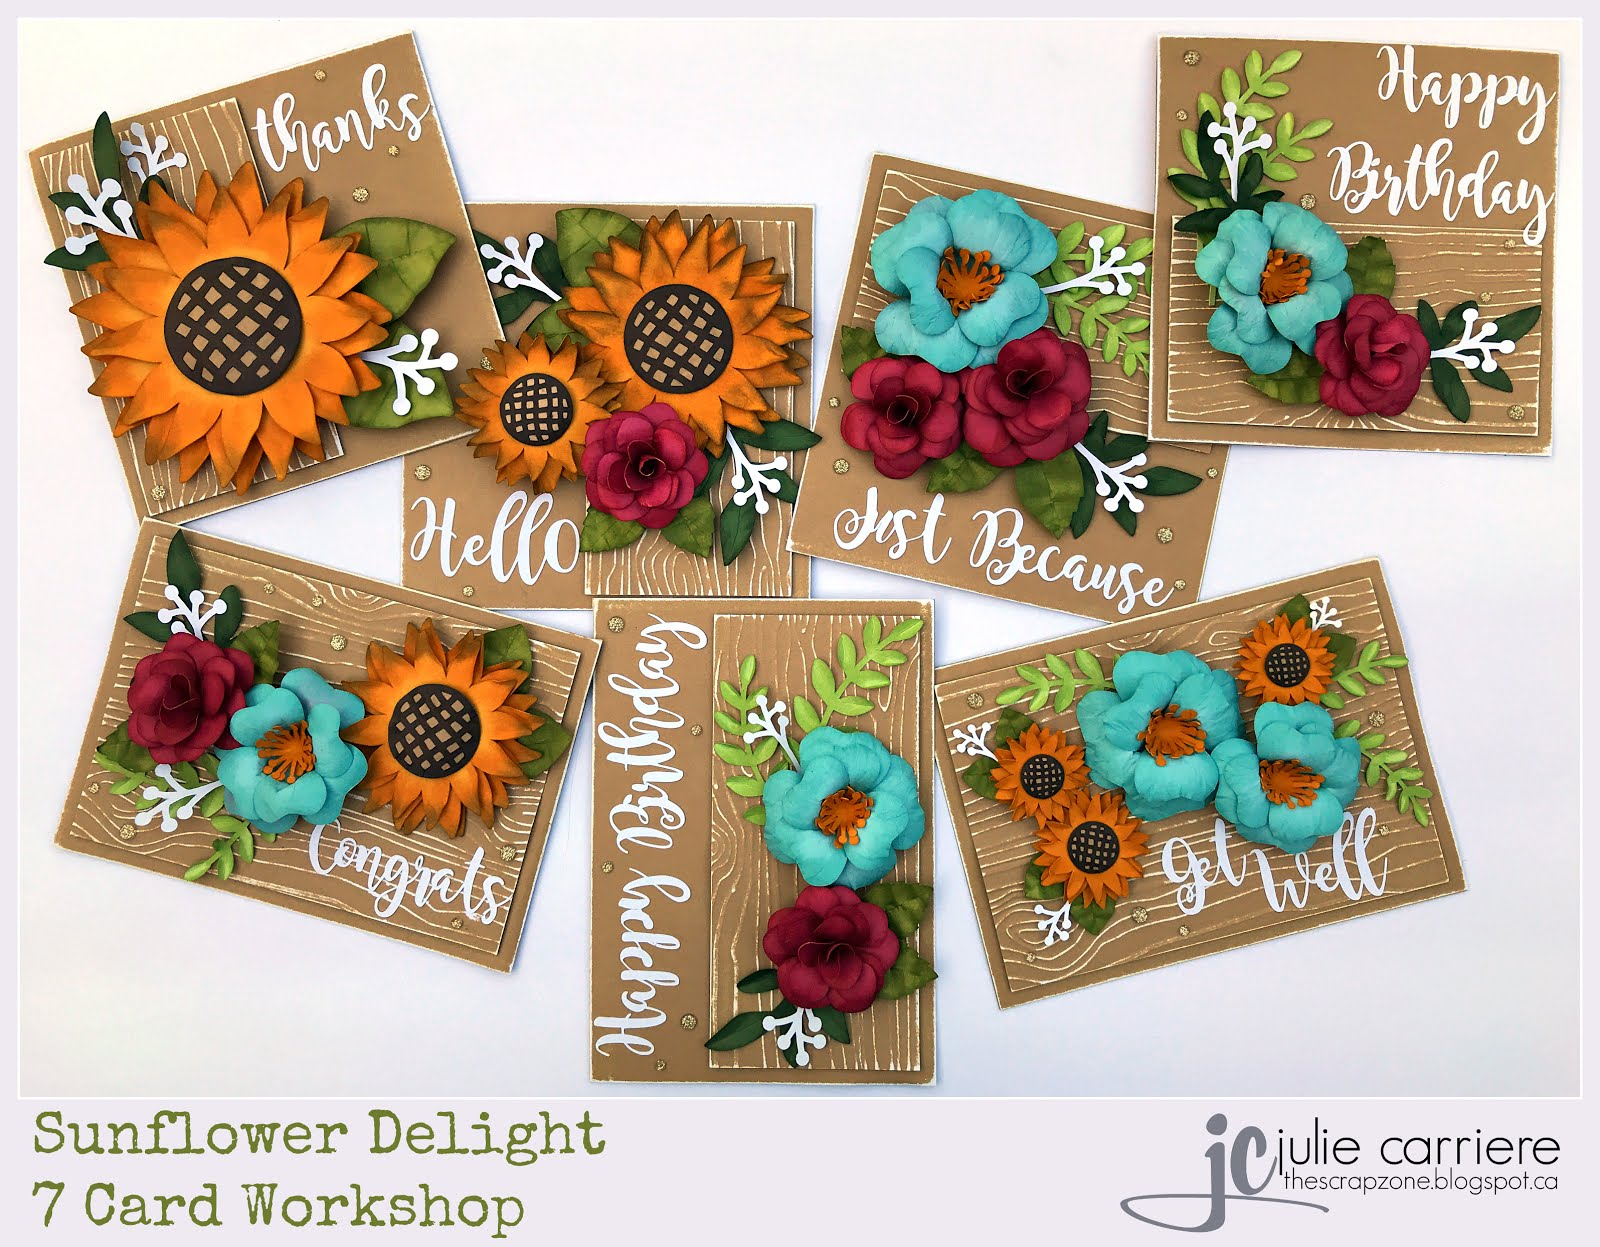 Sunflower Delight Cardmaking Assembly Guide